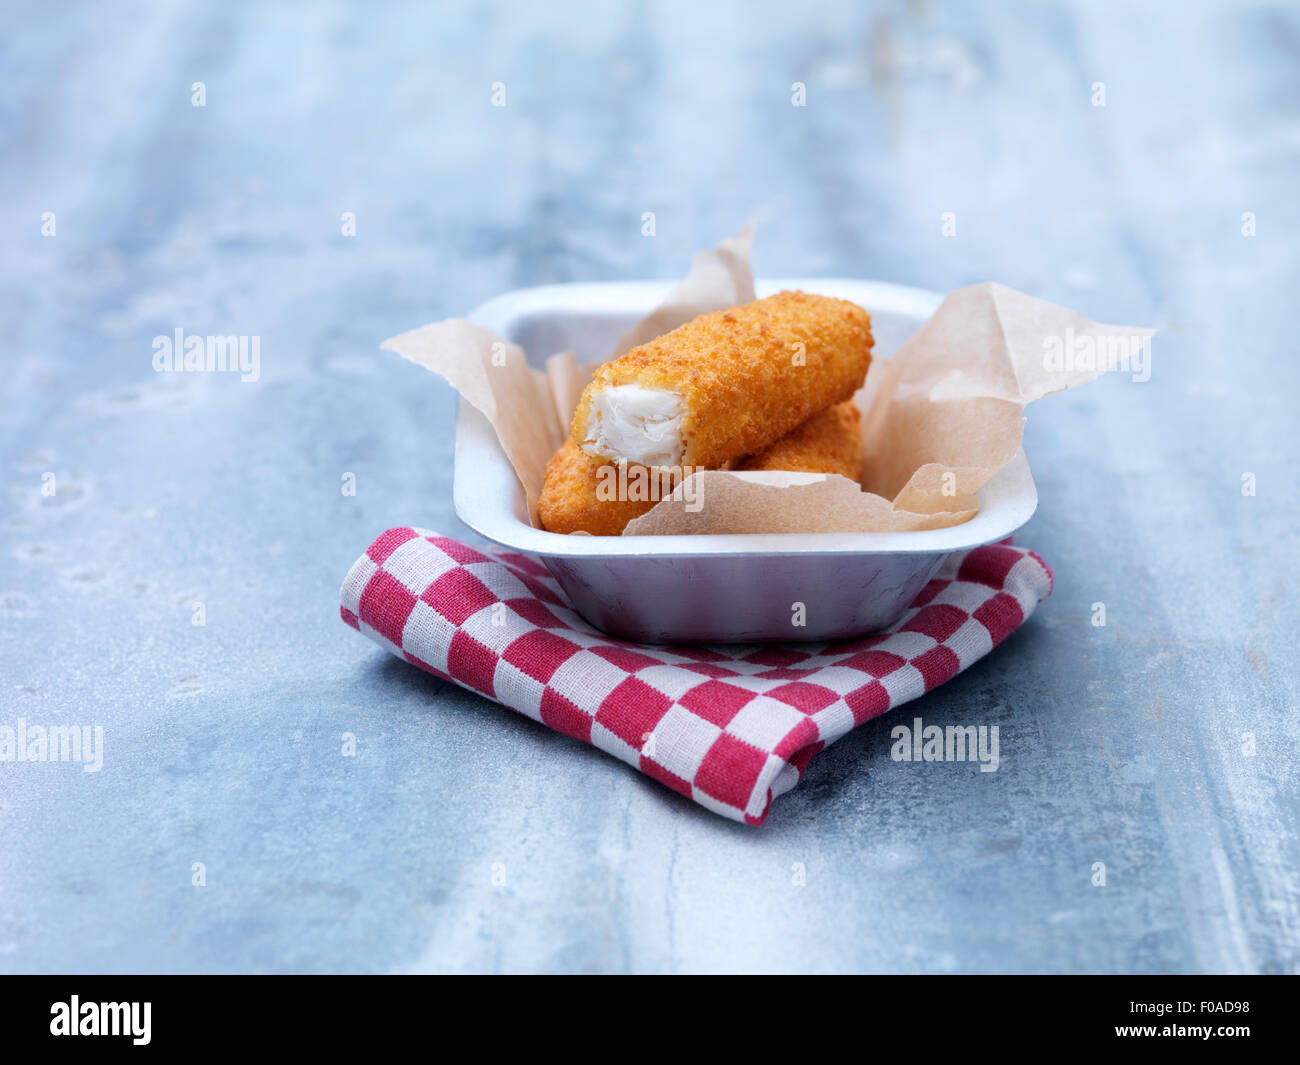 Fried chunky breaded cod fish fingers in baking tin on steel table - Stock Image